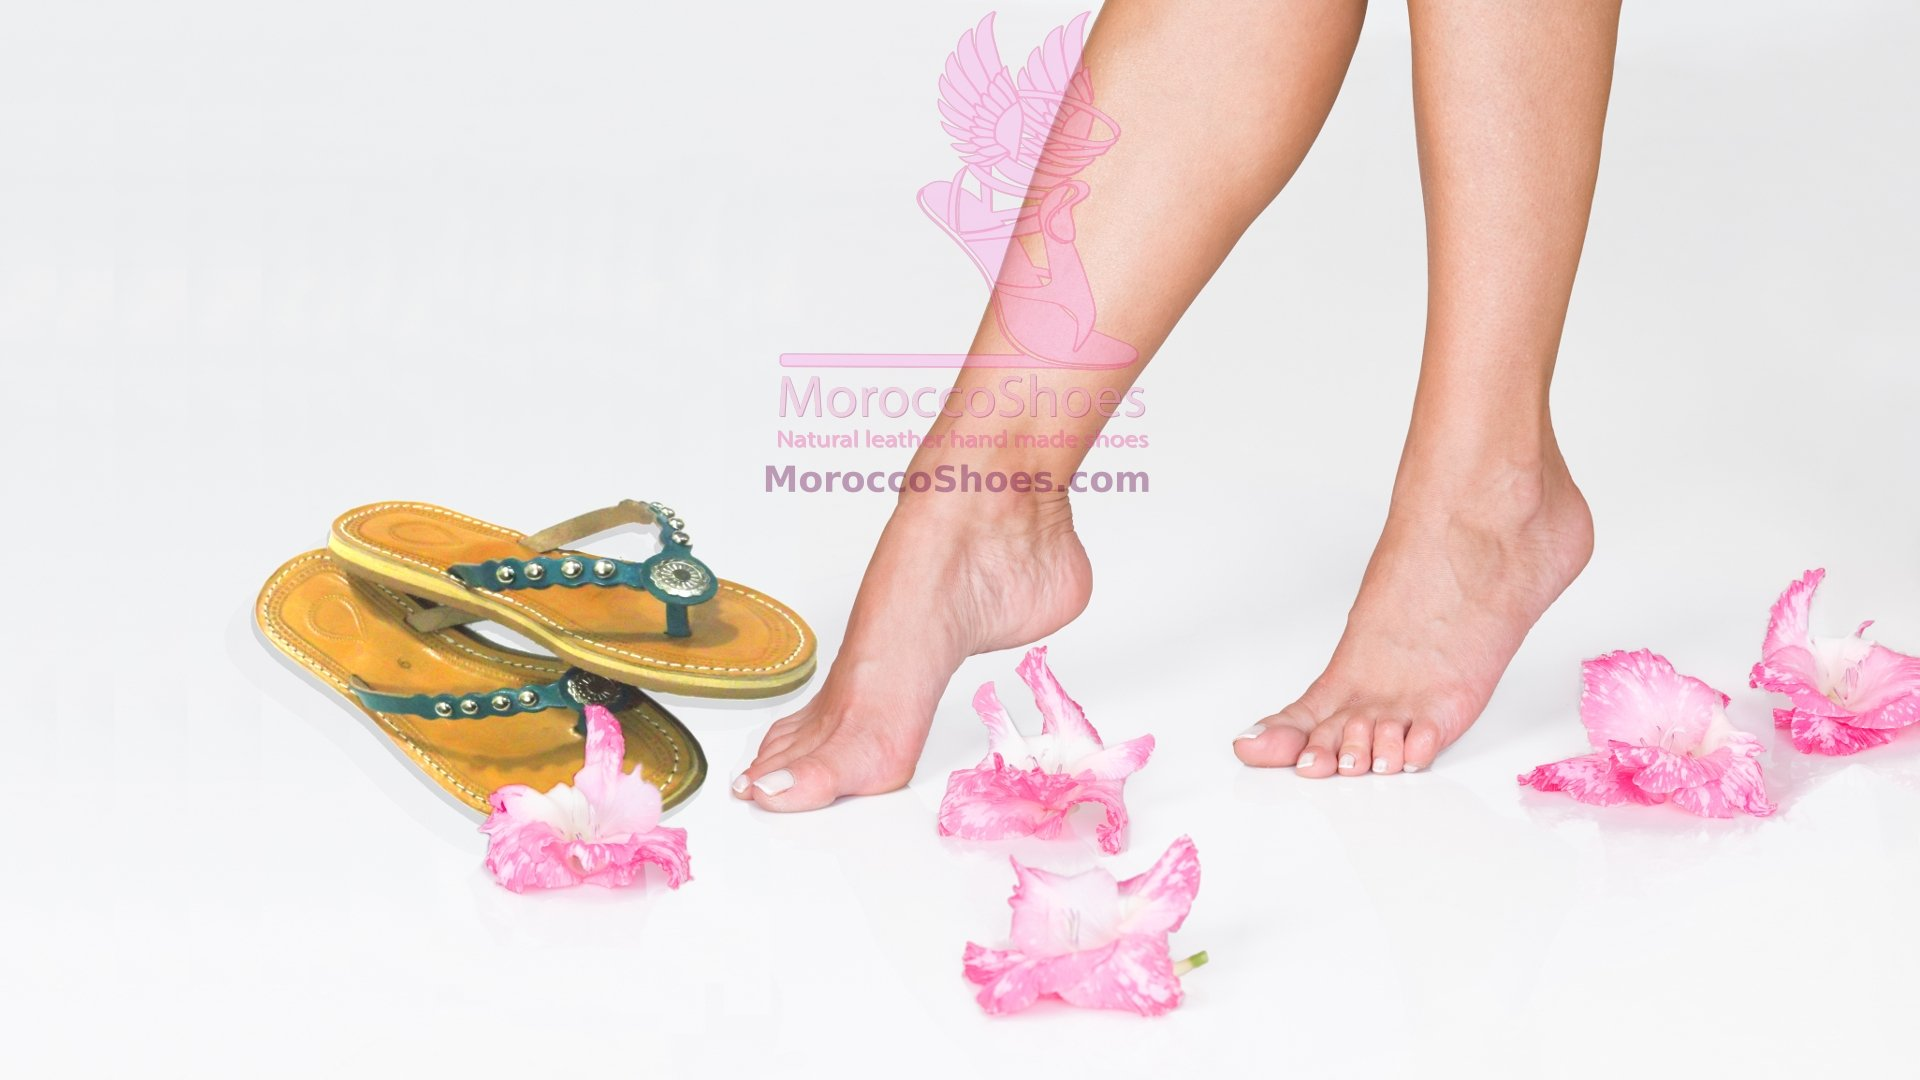 Sandals with beautiful feet and flowers